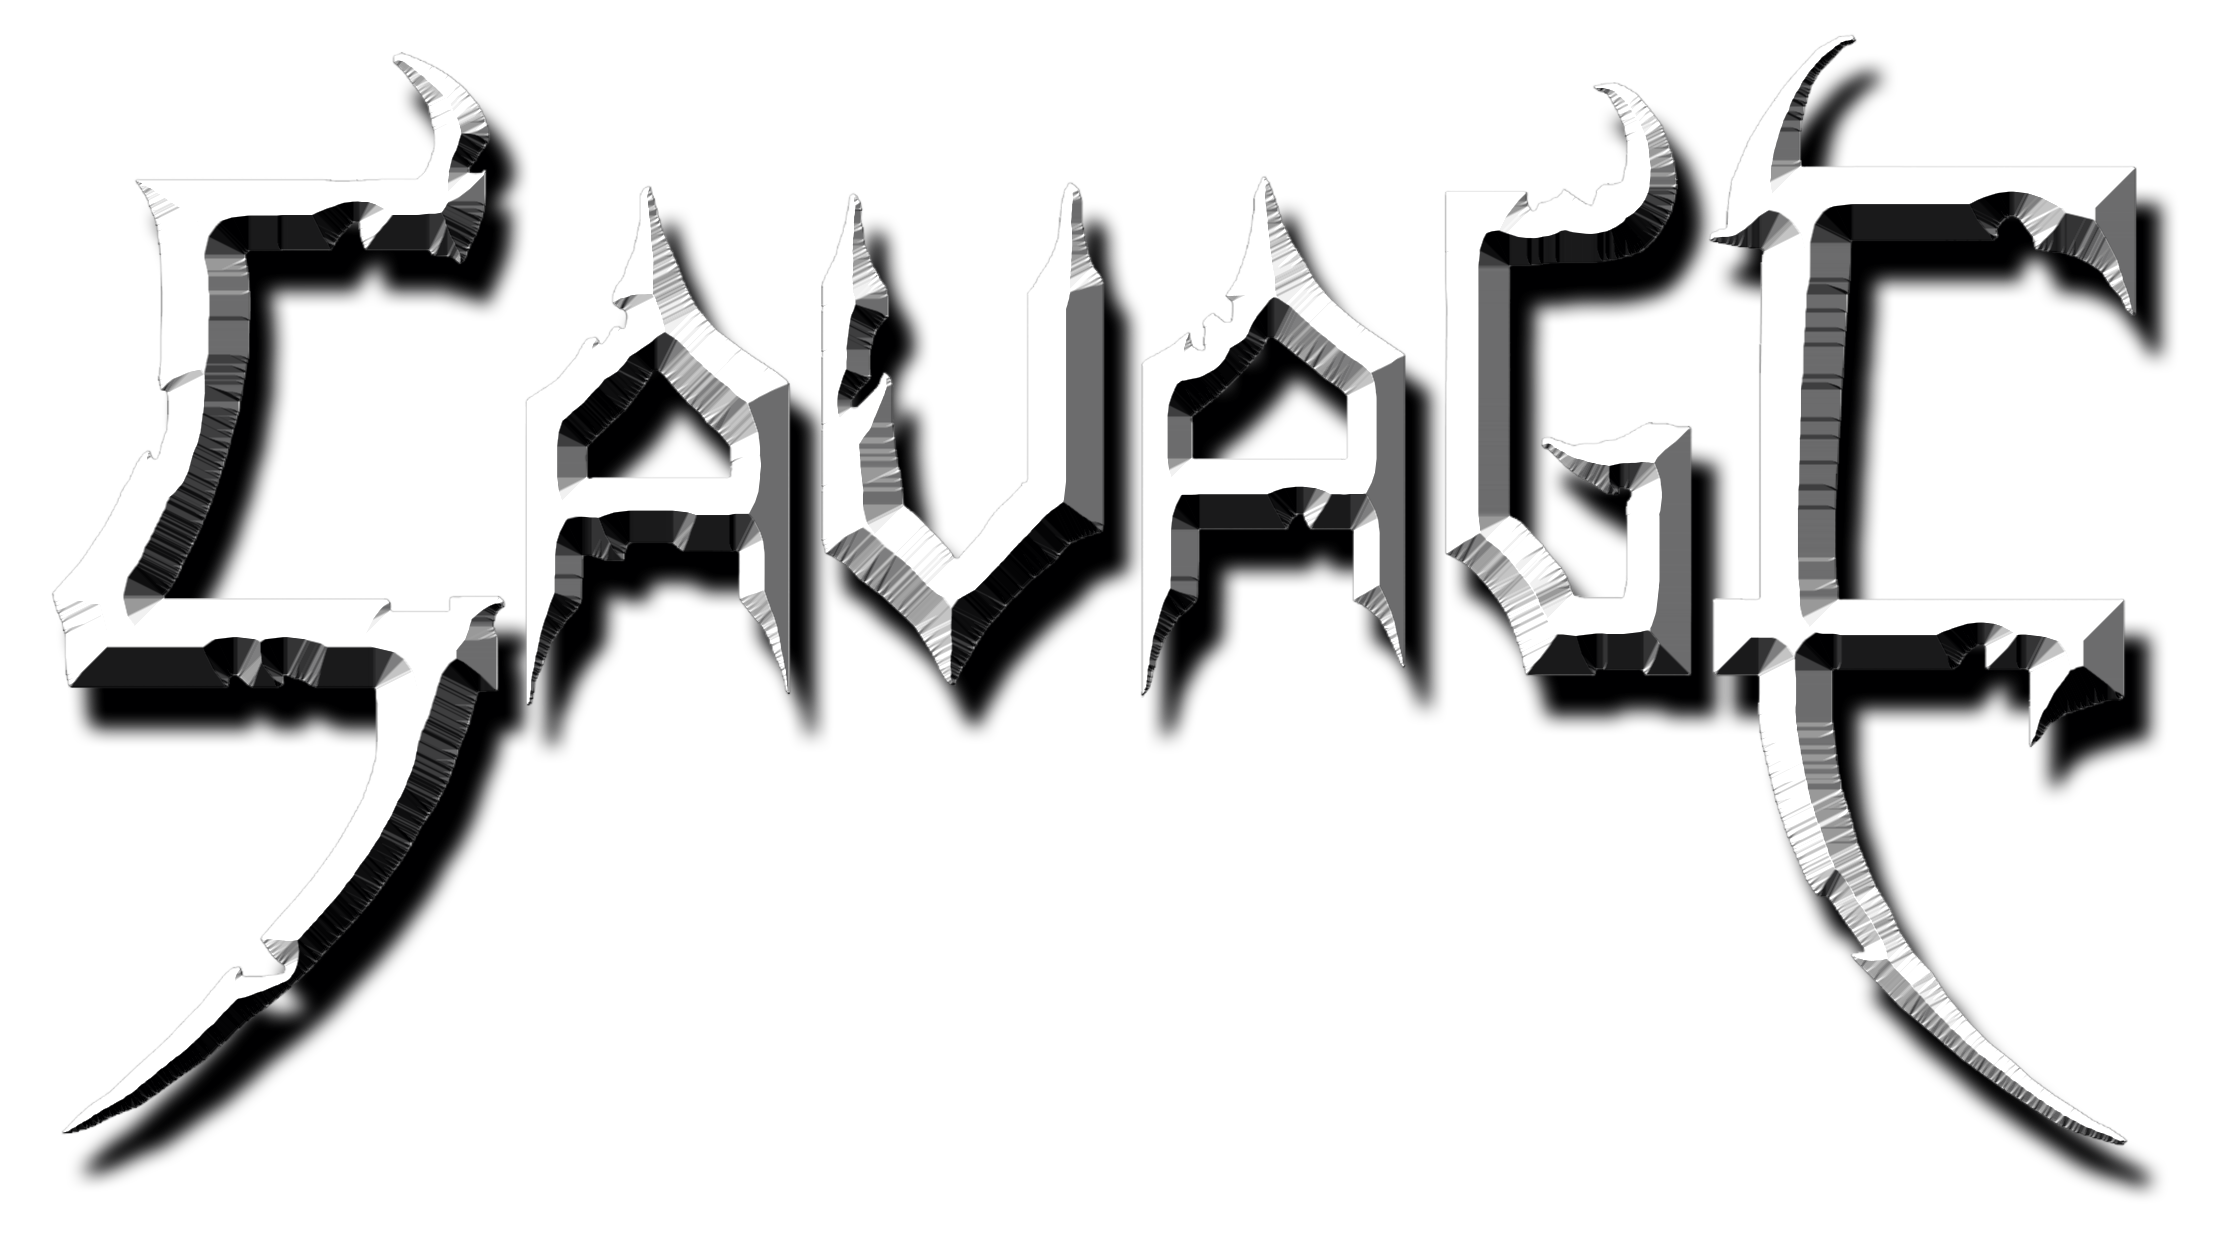 savage logo 300